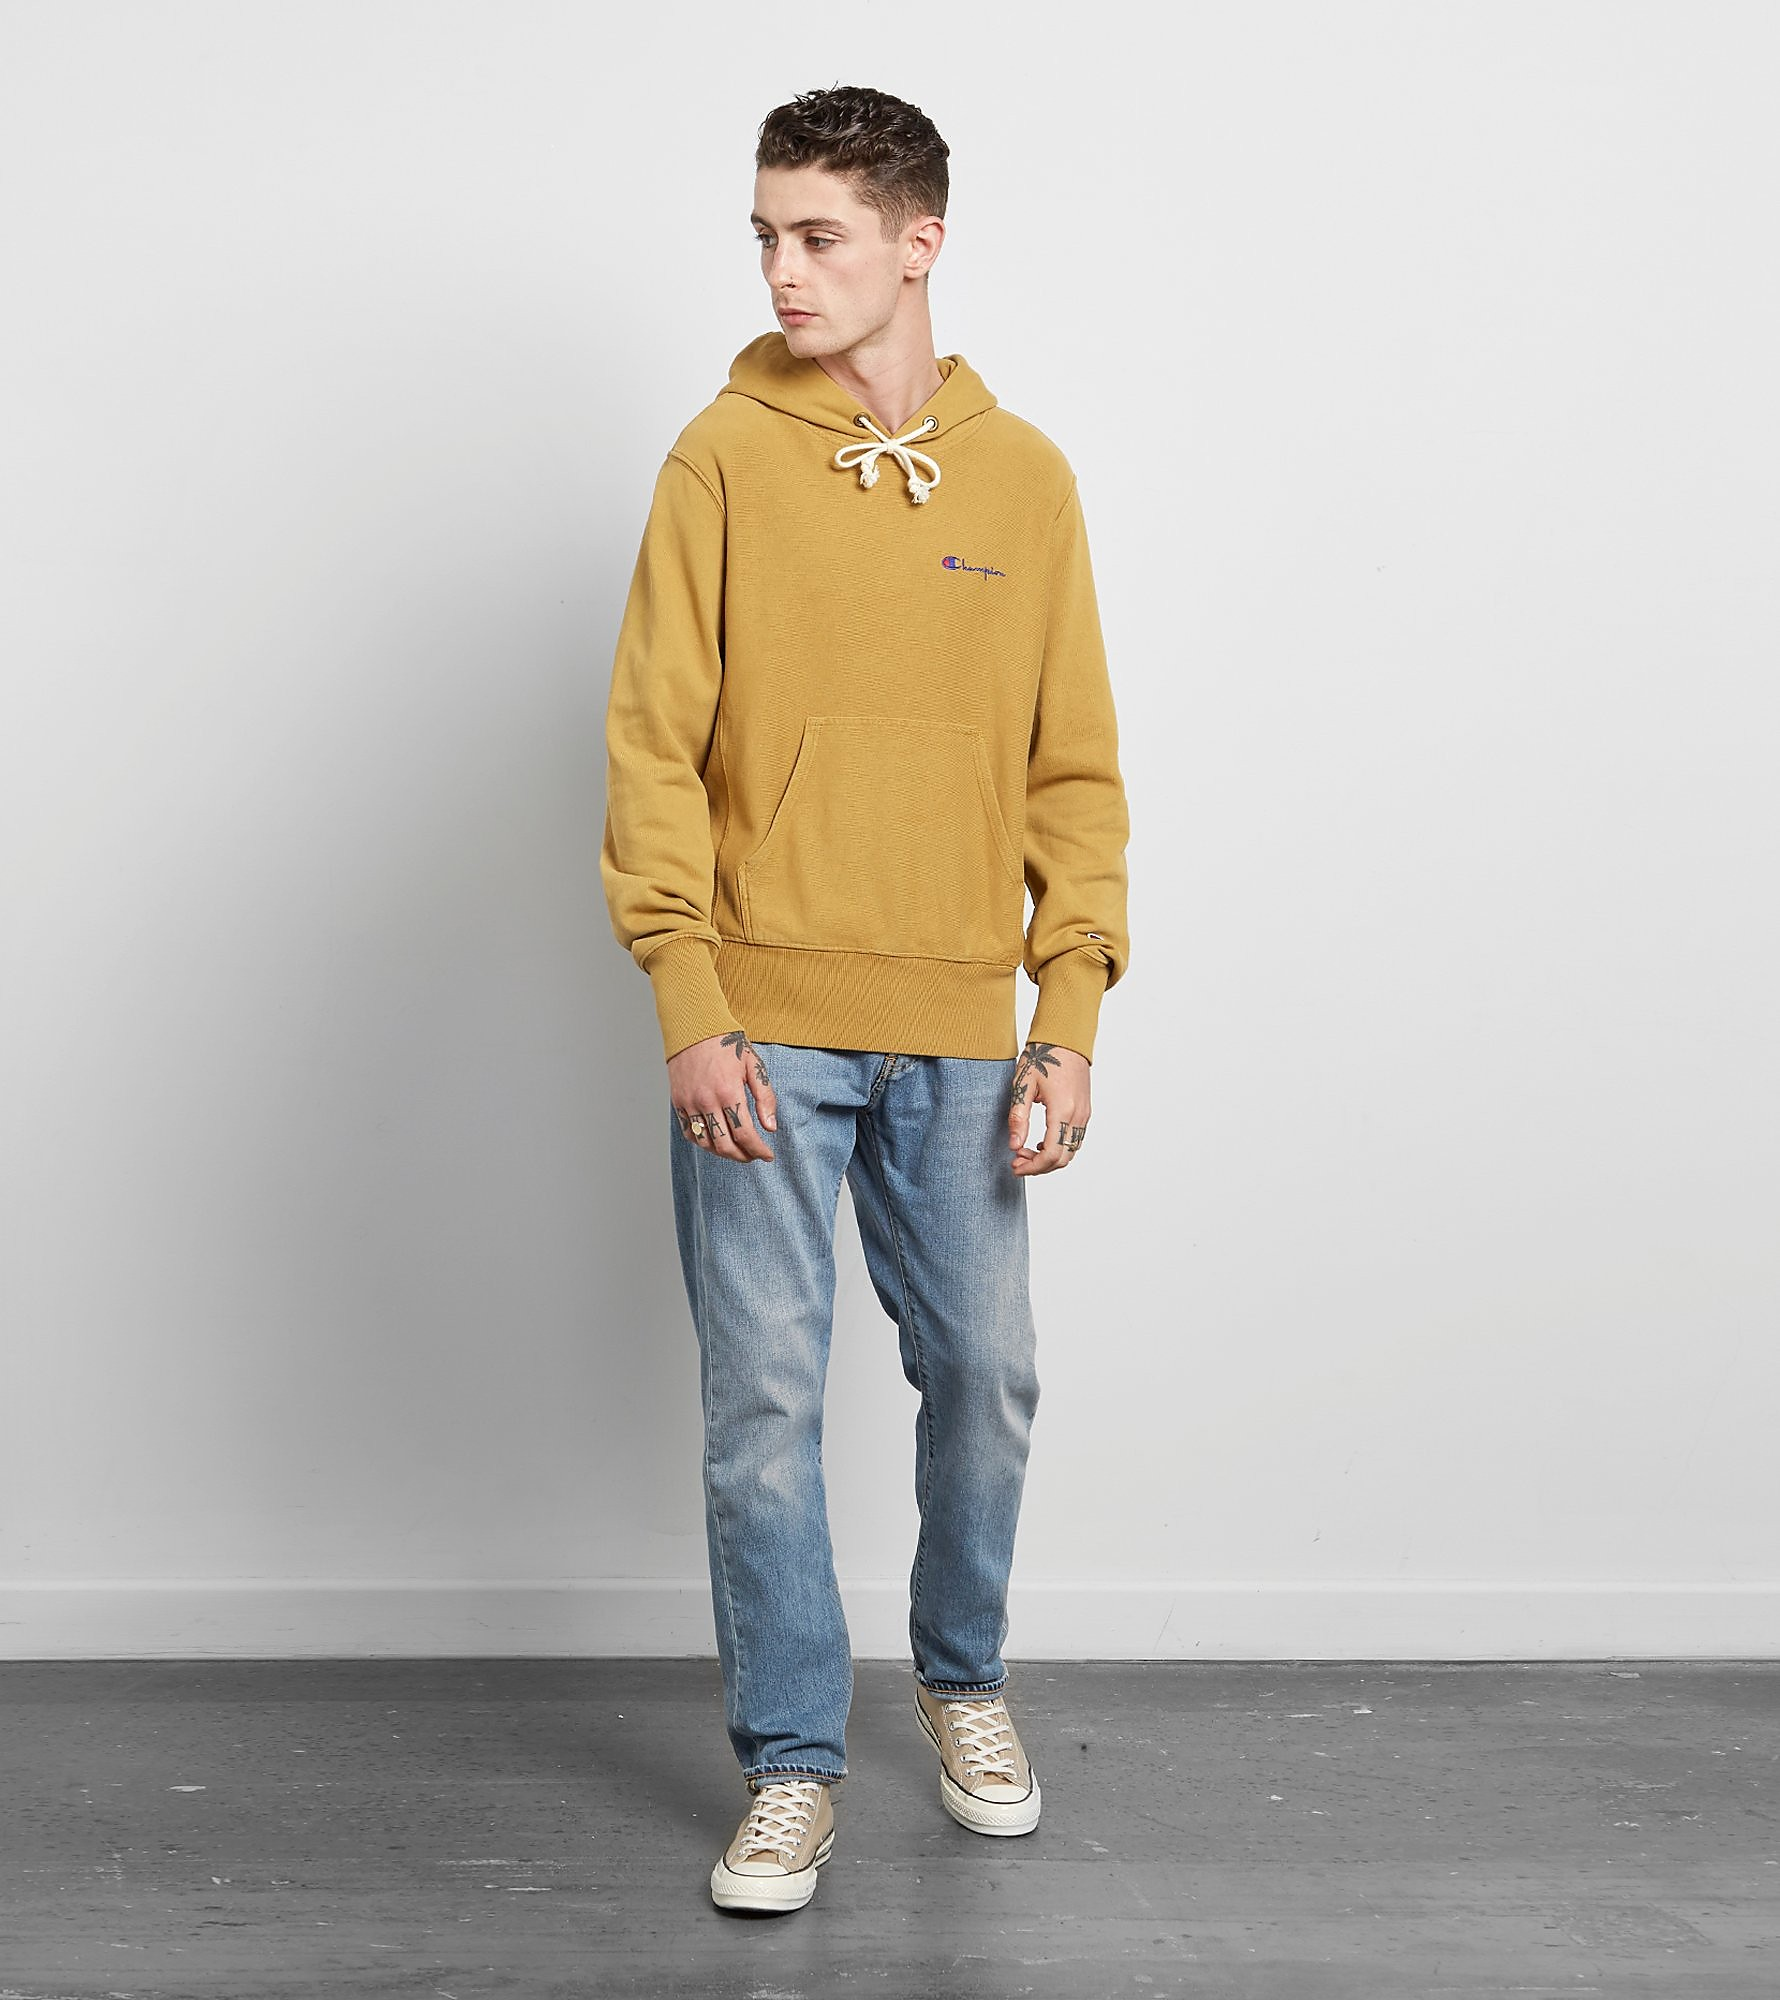 Champion Sudadera con capucha Garment Dyed - size? Exclusiva